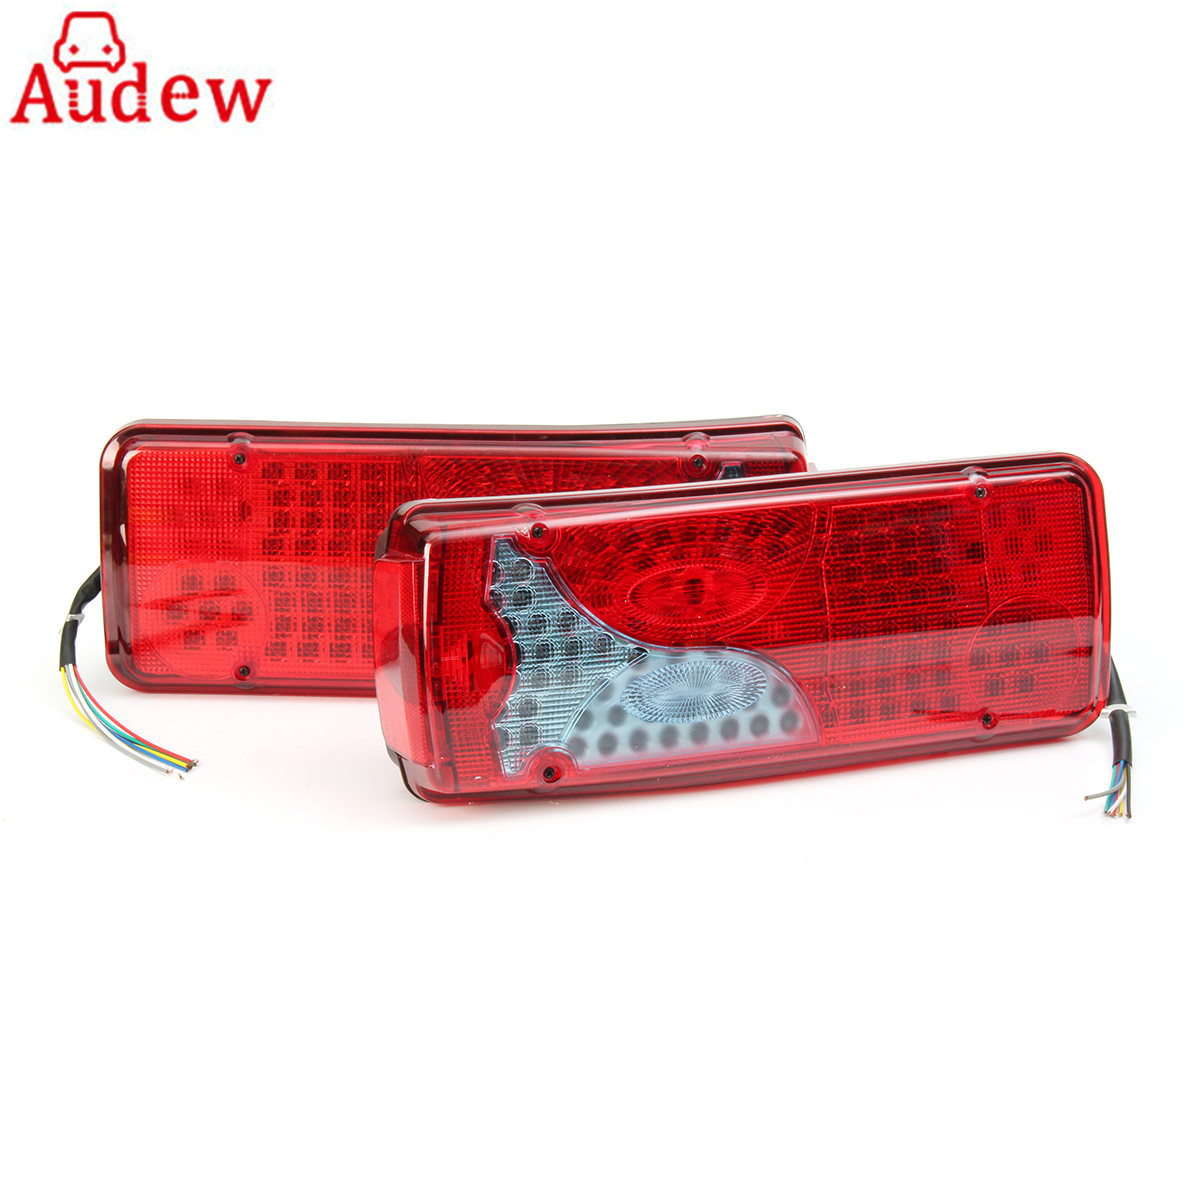 Car-Brake-Stop-Light Trailer-Truck Tail DAF SCANIA 24V for MAN Lorry TGX 1pair 120LED title=